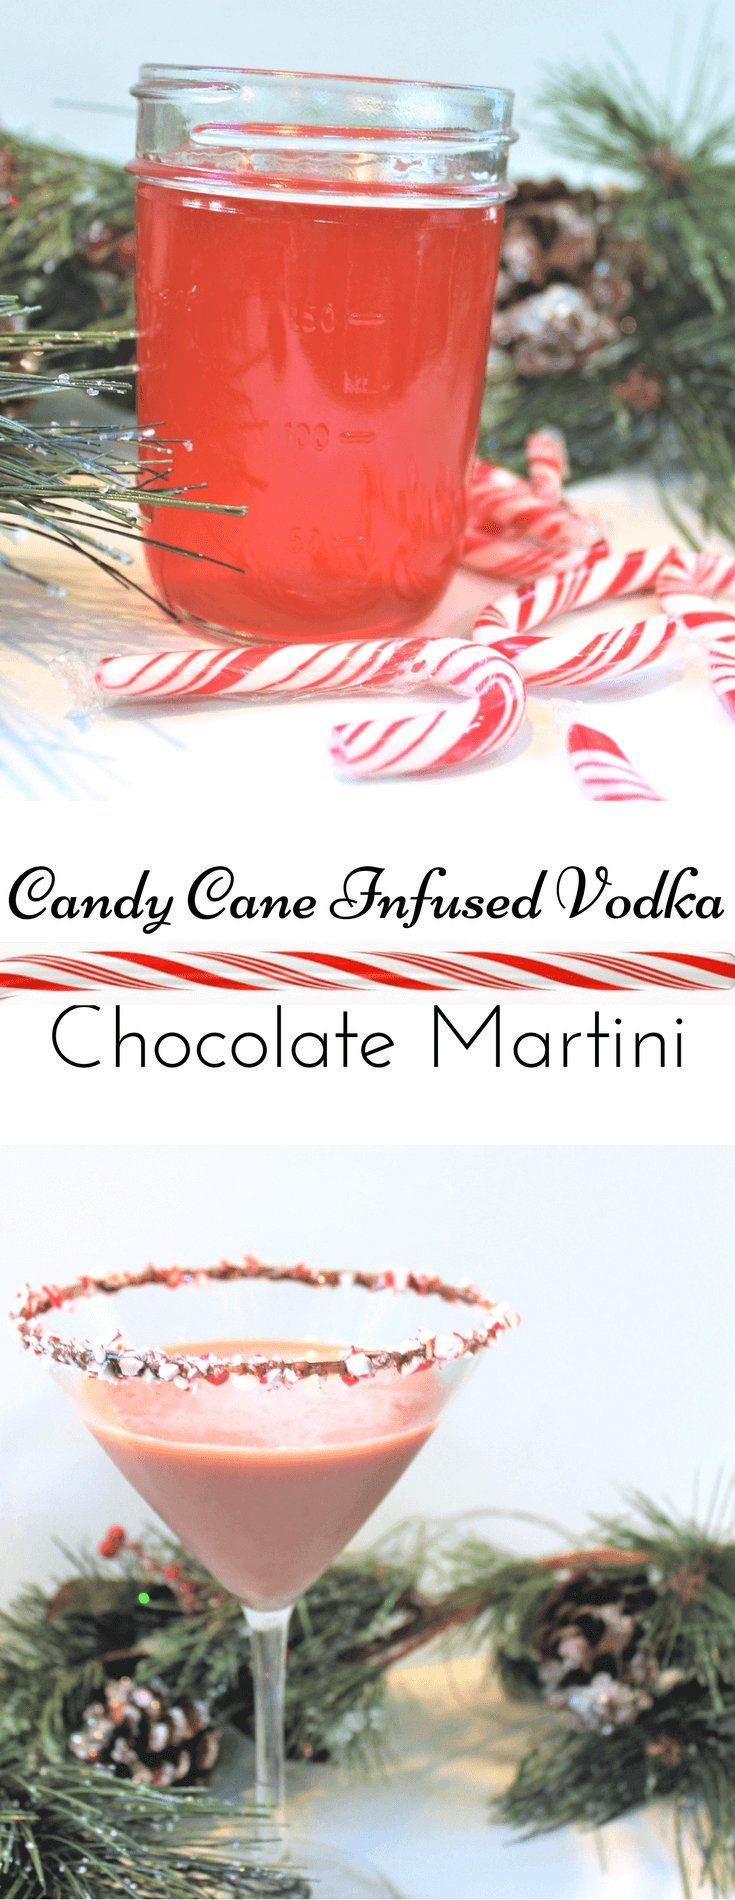 Candy Cane Infused Vodka Chocolate Martini